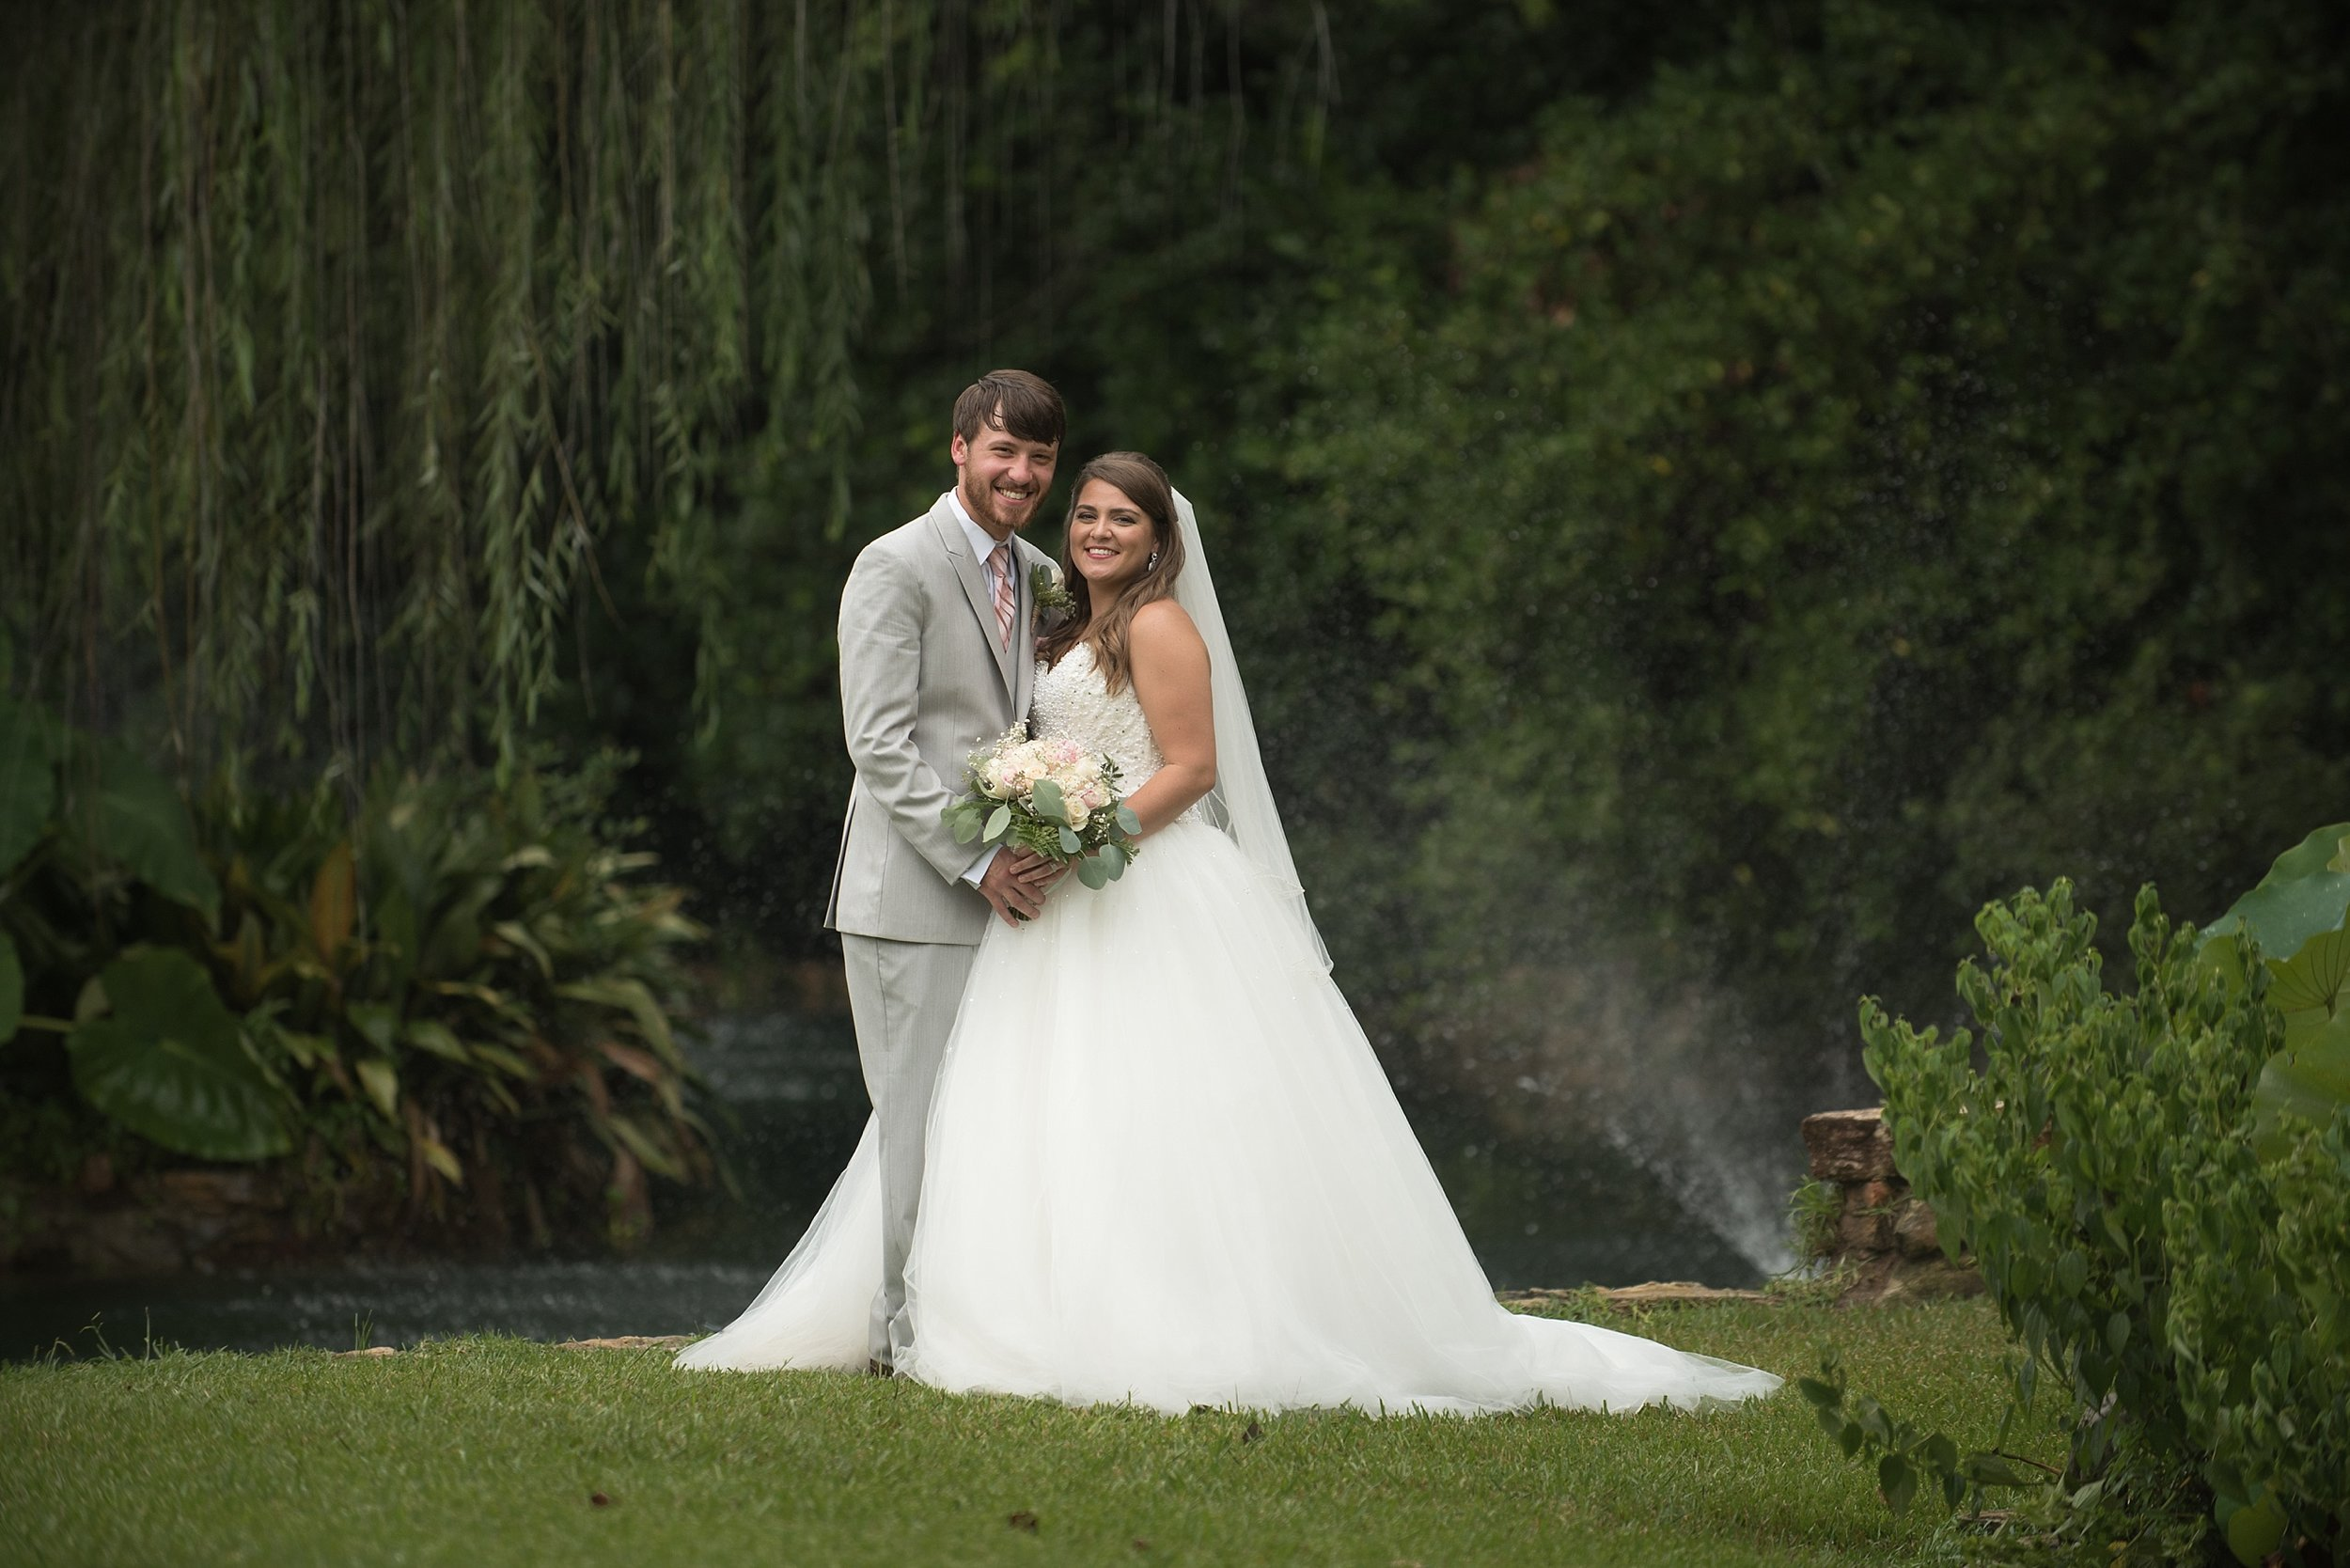 Newlyweds in front of weeping willow tree happily smile